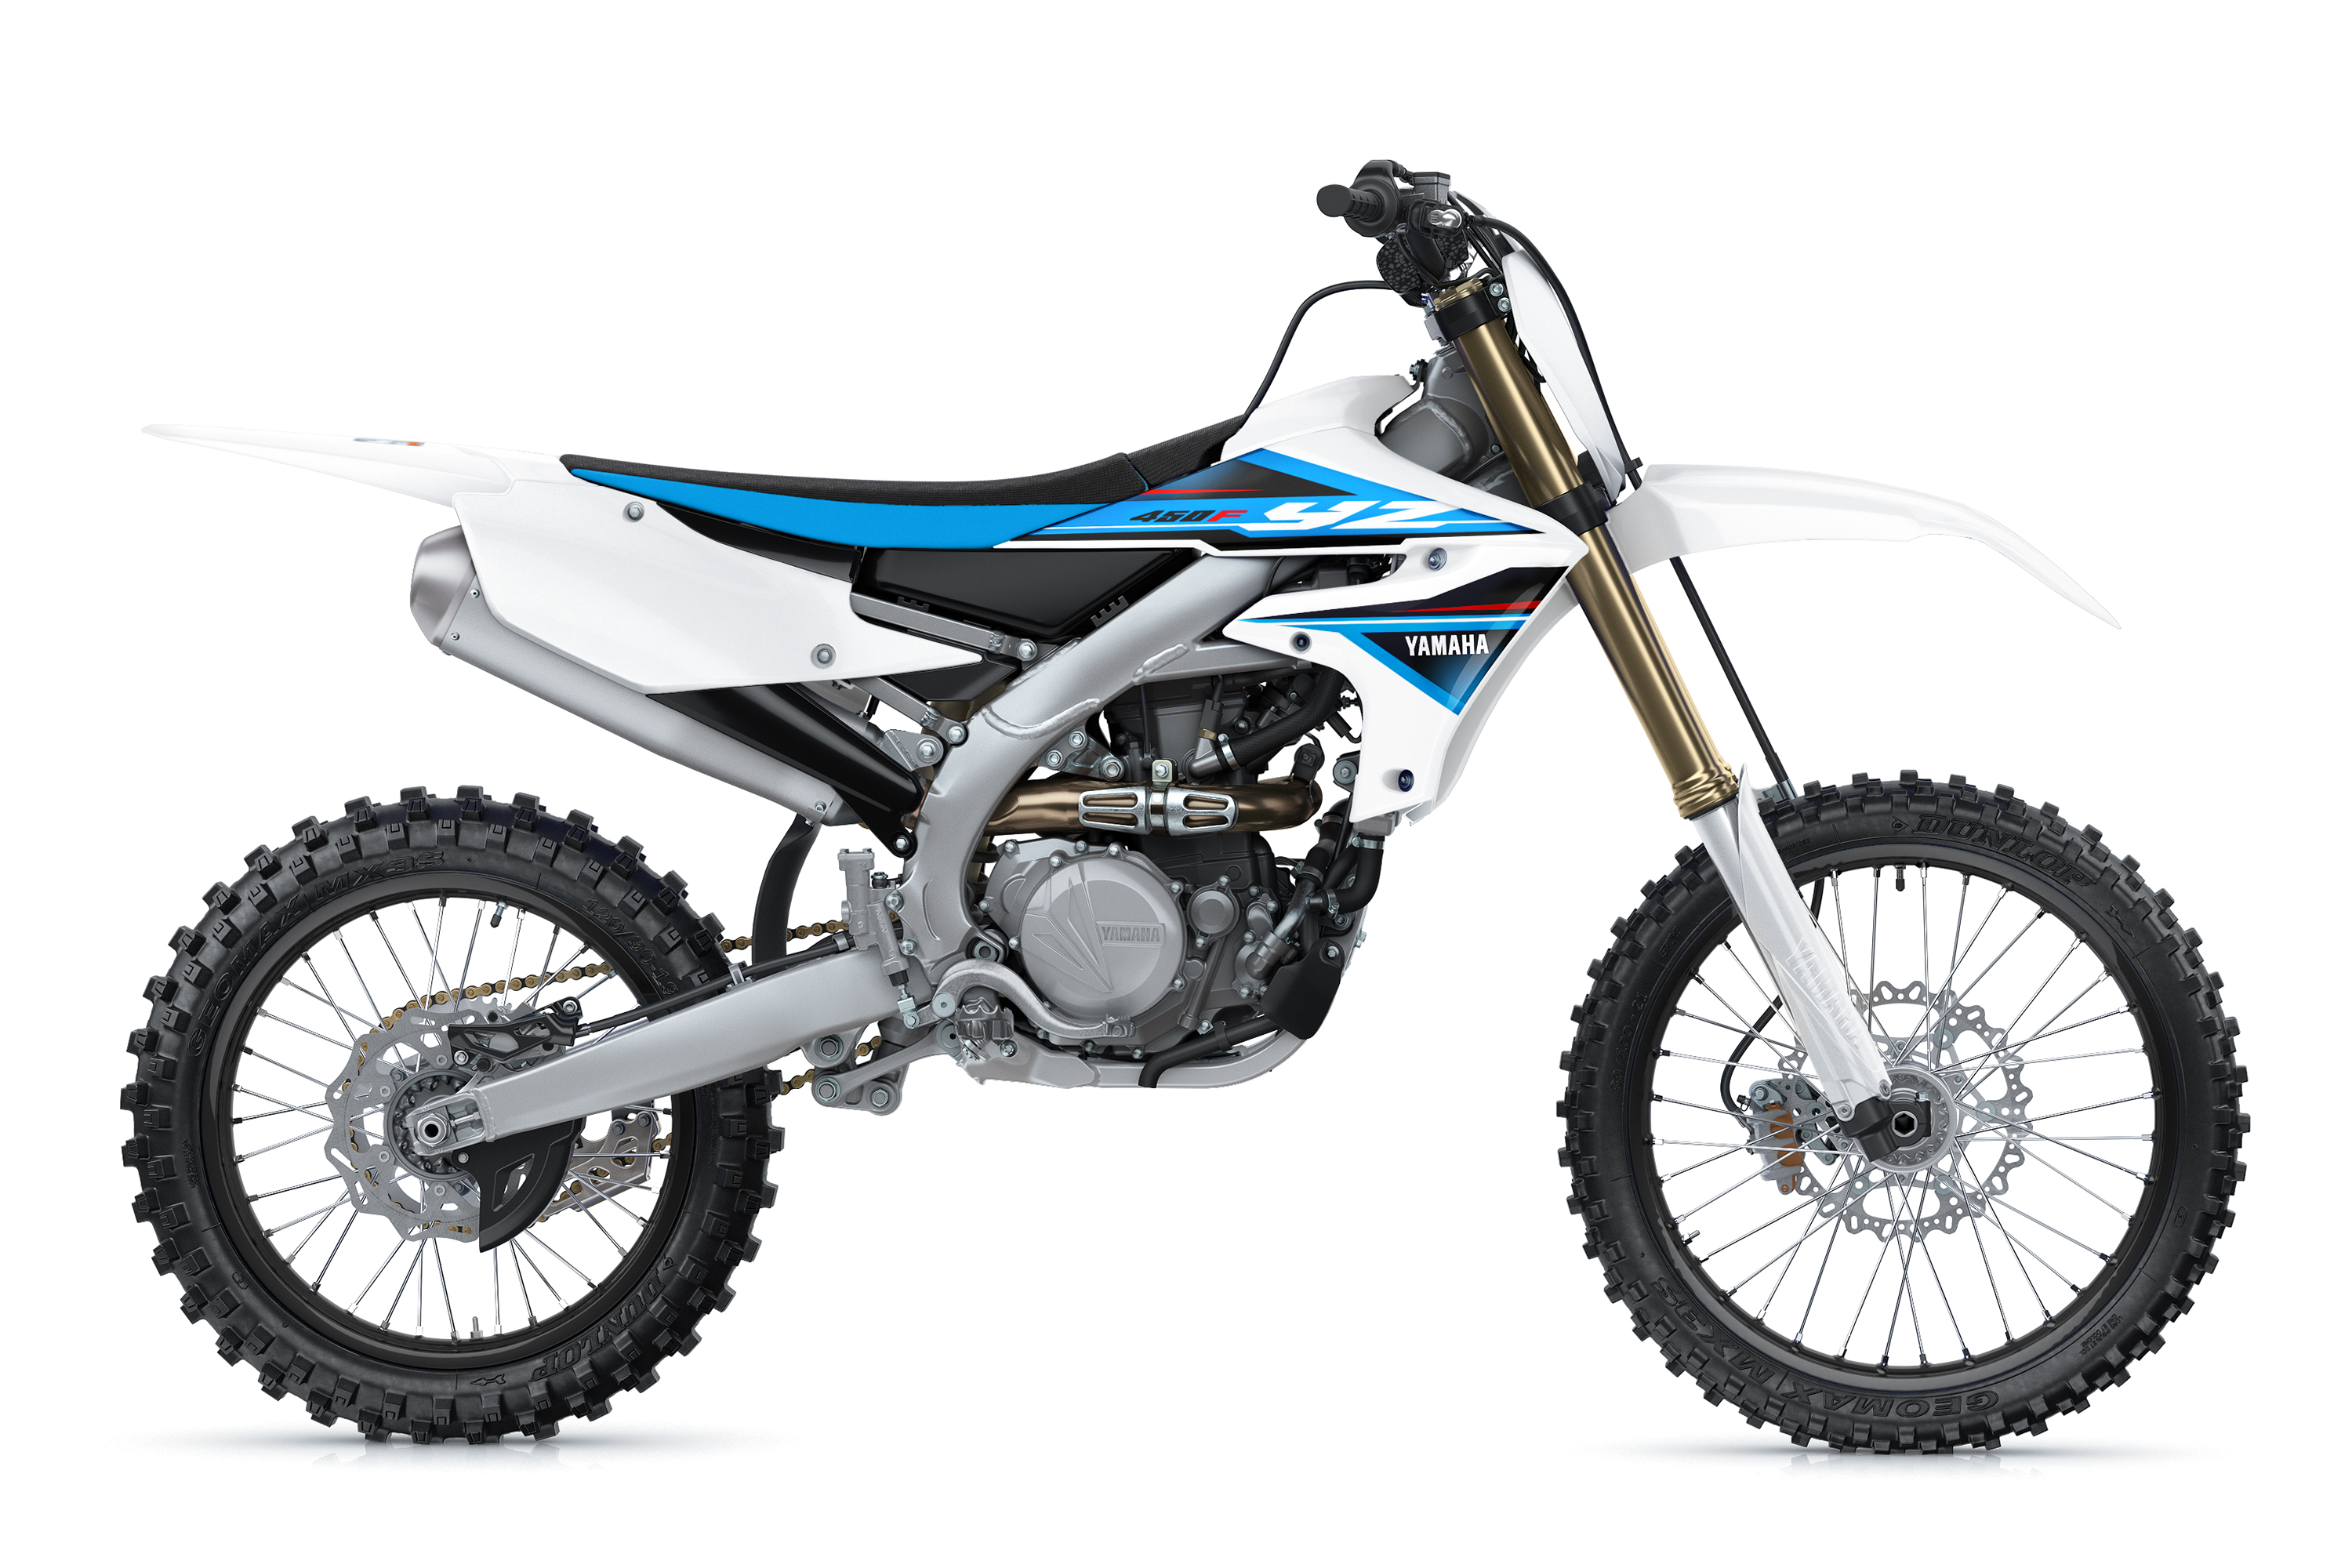 Yamaha Yz450f First Ride Review